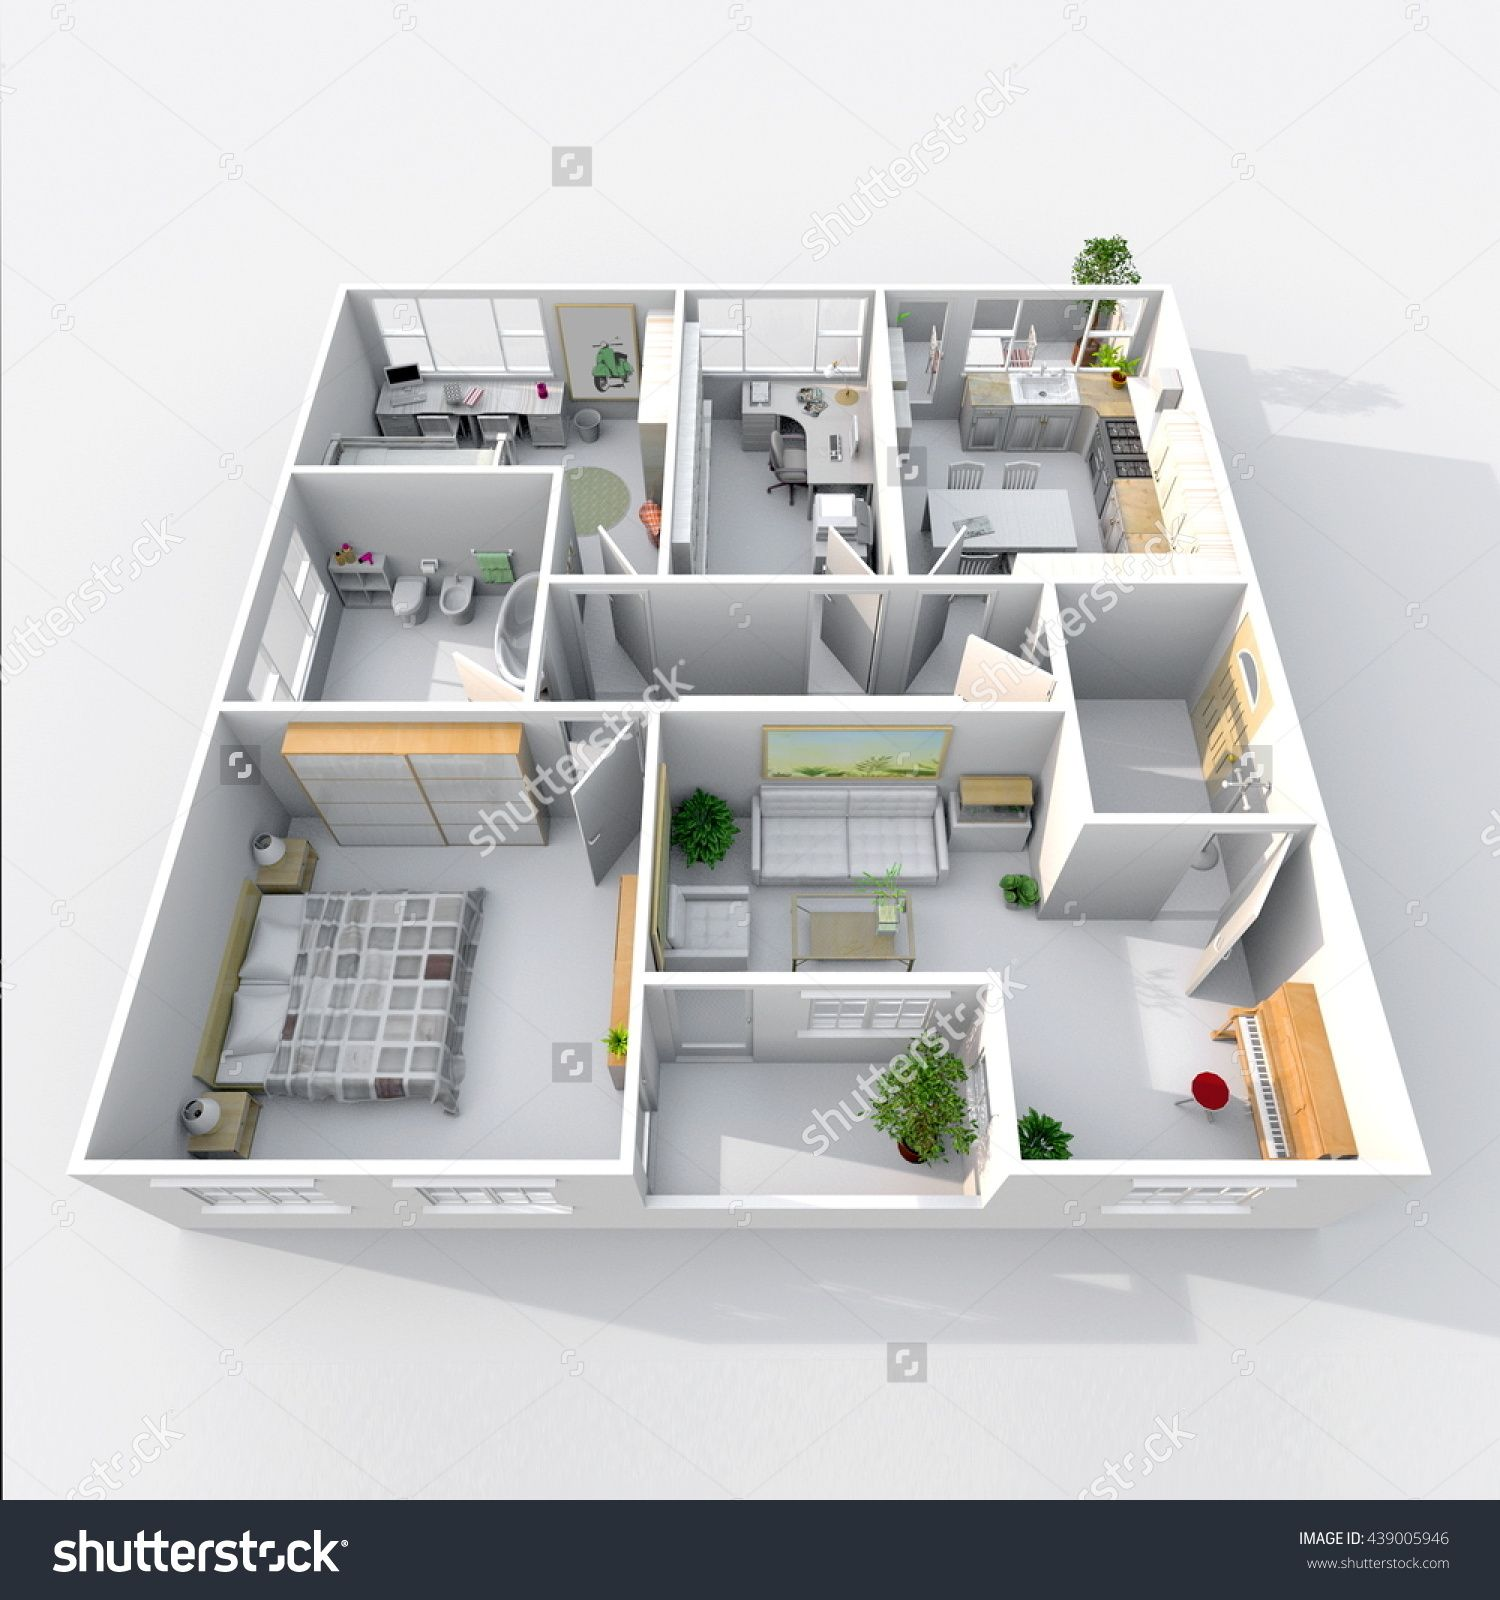 3d Interior Rendering Perspective View Of Square Furnished Home Apartment Room Bathroom Bedroom